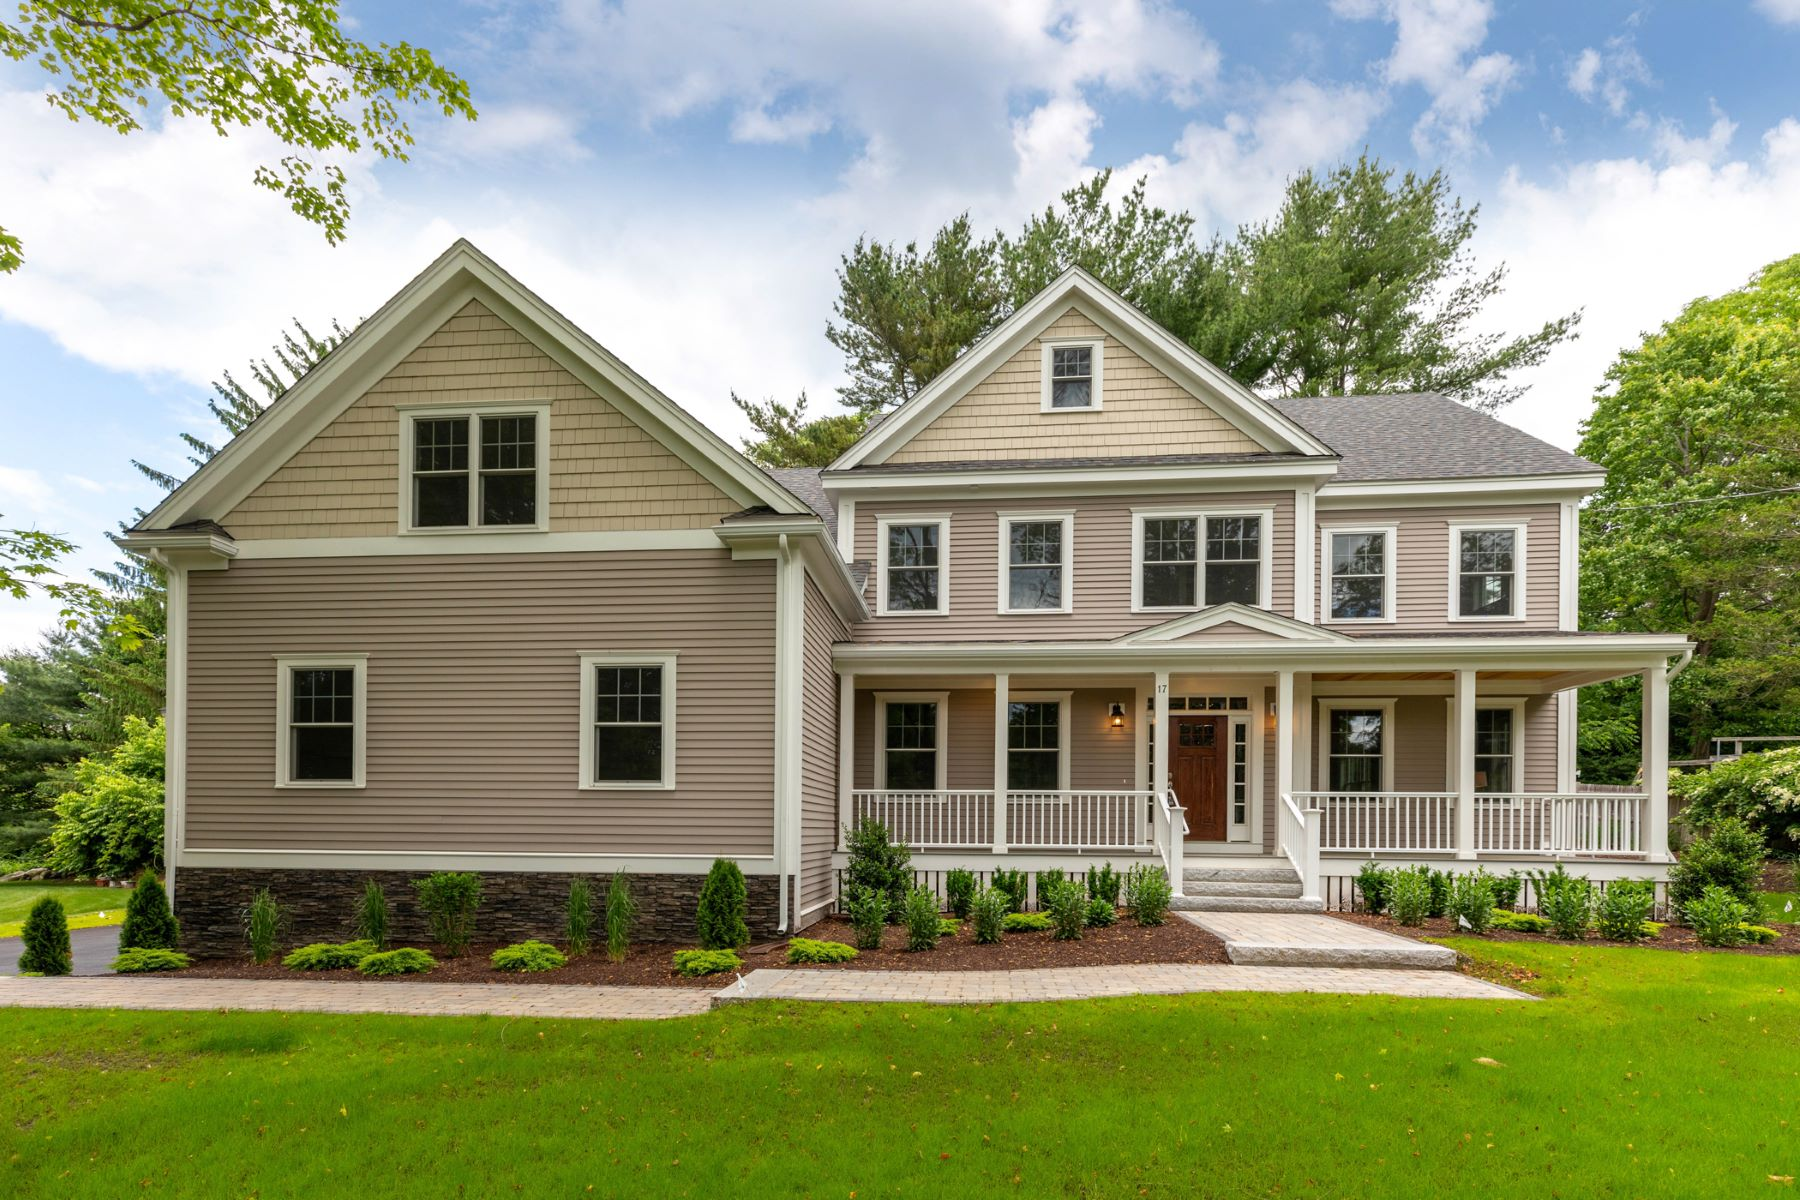 Single Family Homes for Active at 17 Minute Man Lane, Lexington 17 Minute Man Ln Lexington, Massachusetts 02421 United States